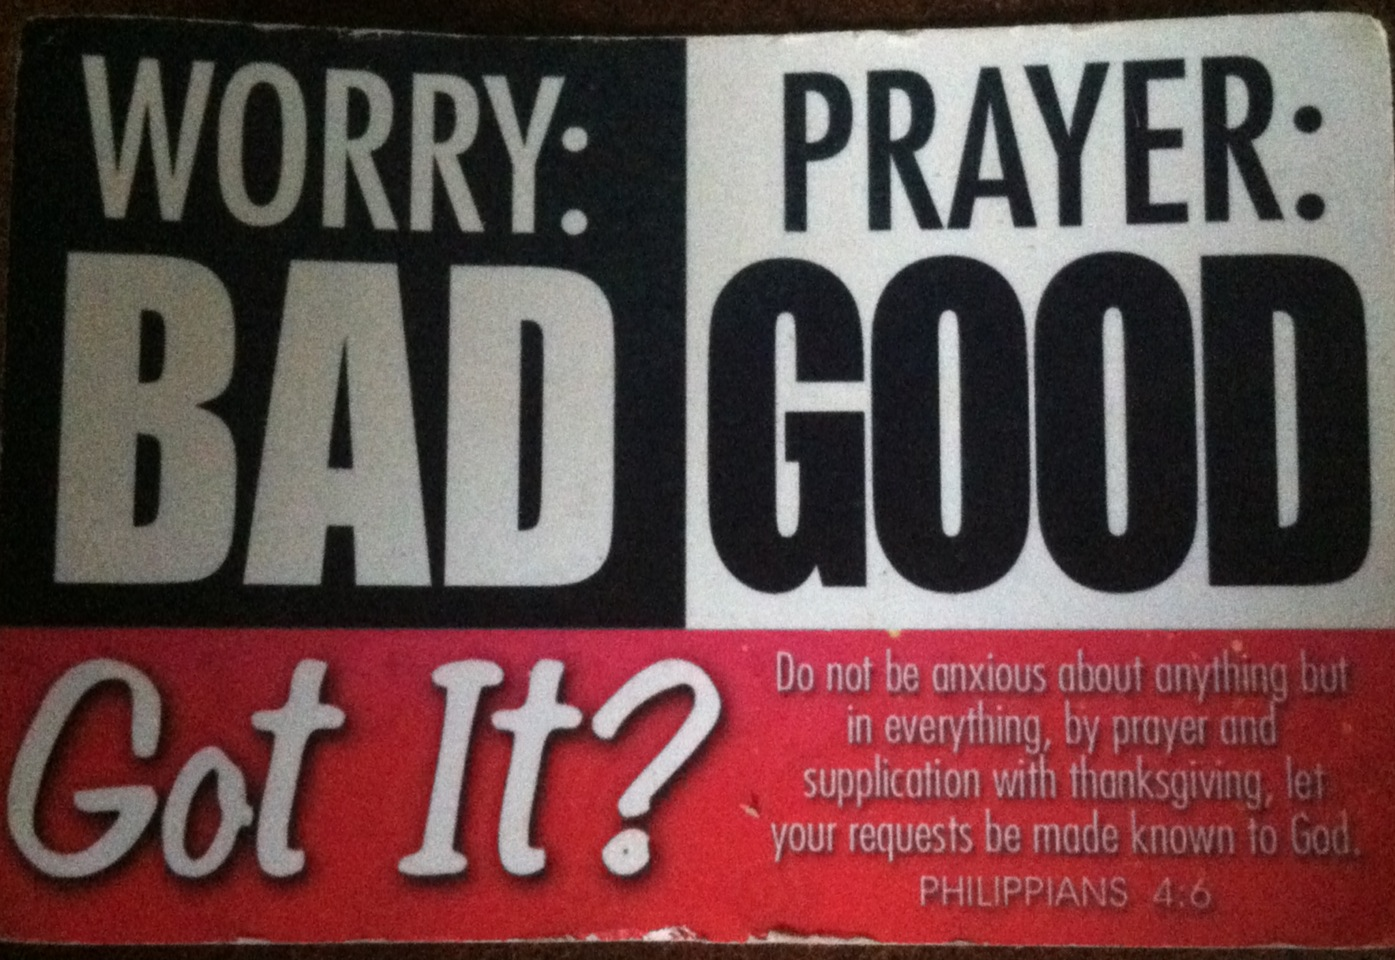 dont-worry-pray-instead